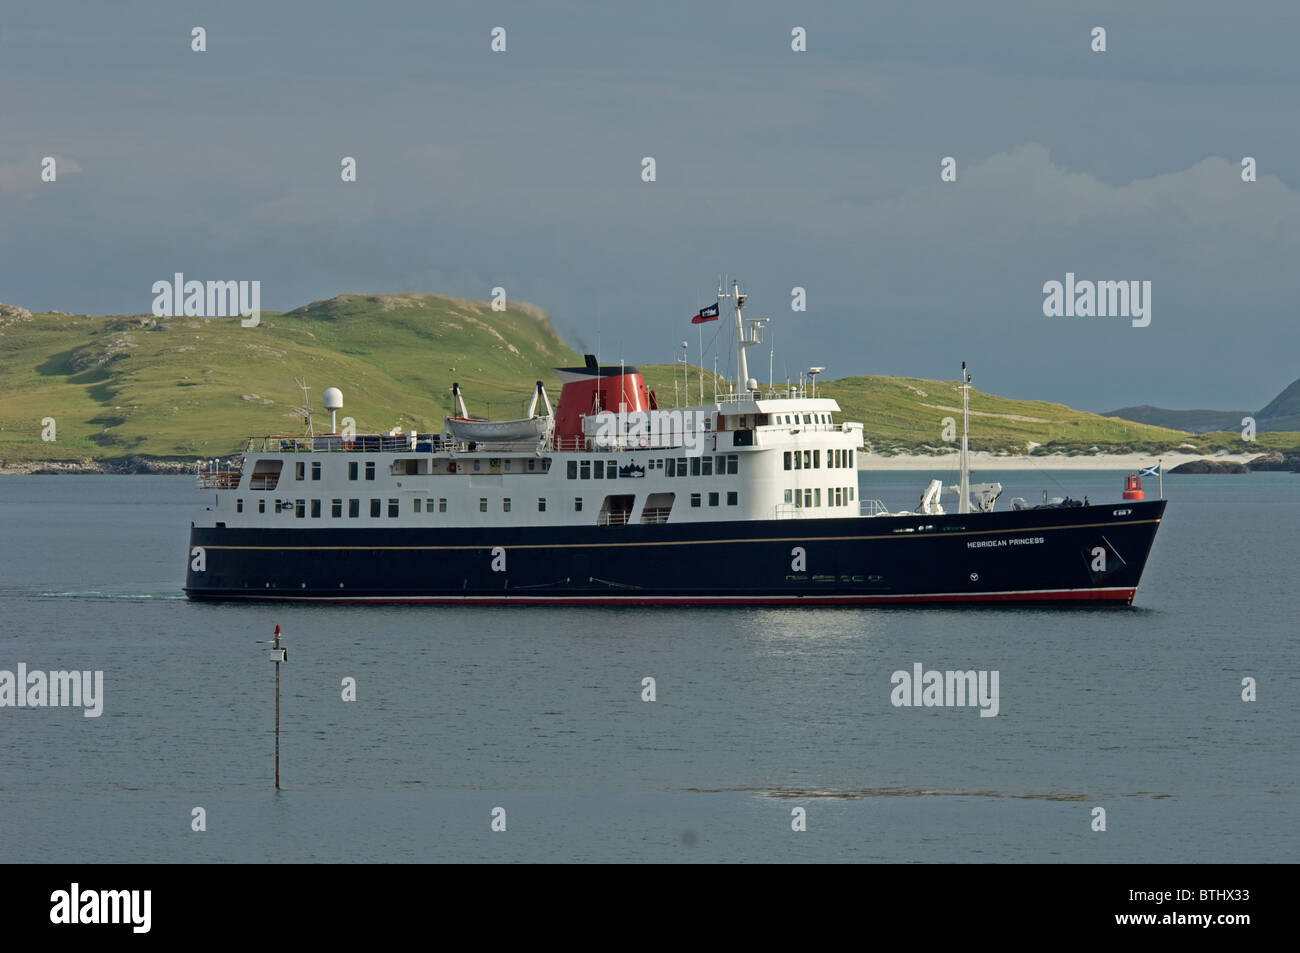 The small luxury cruise ship arriving in castlebay isle of for Luxury small cruise lines